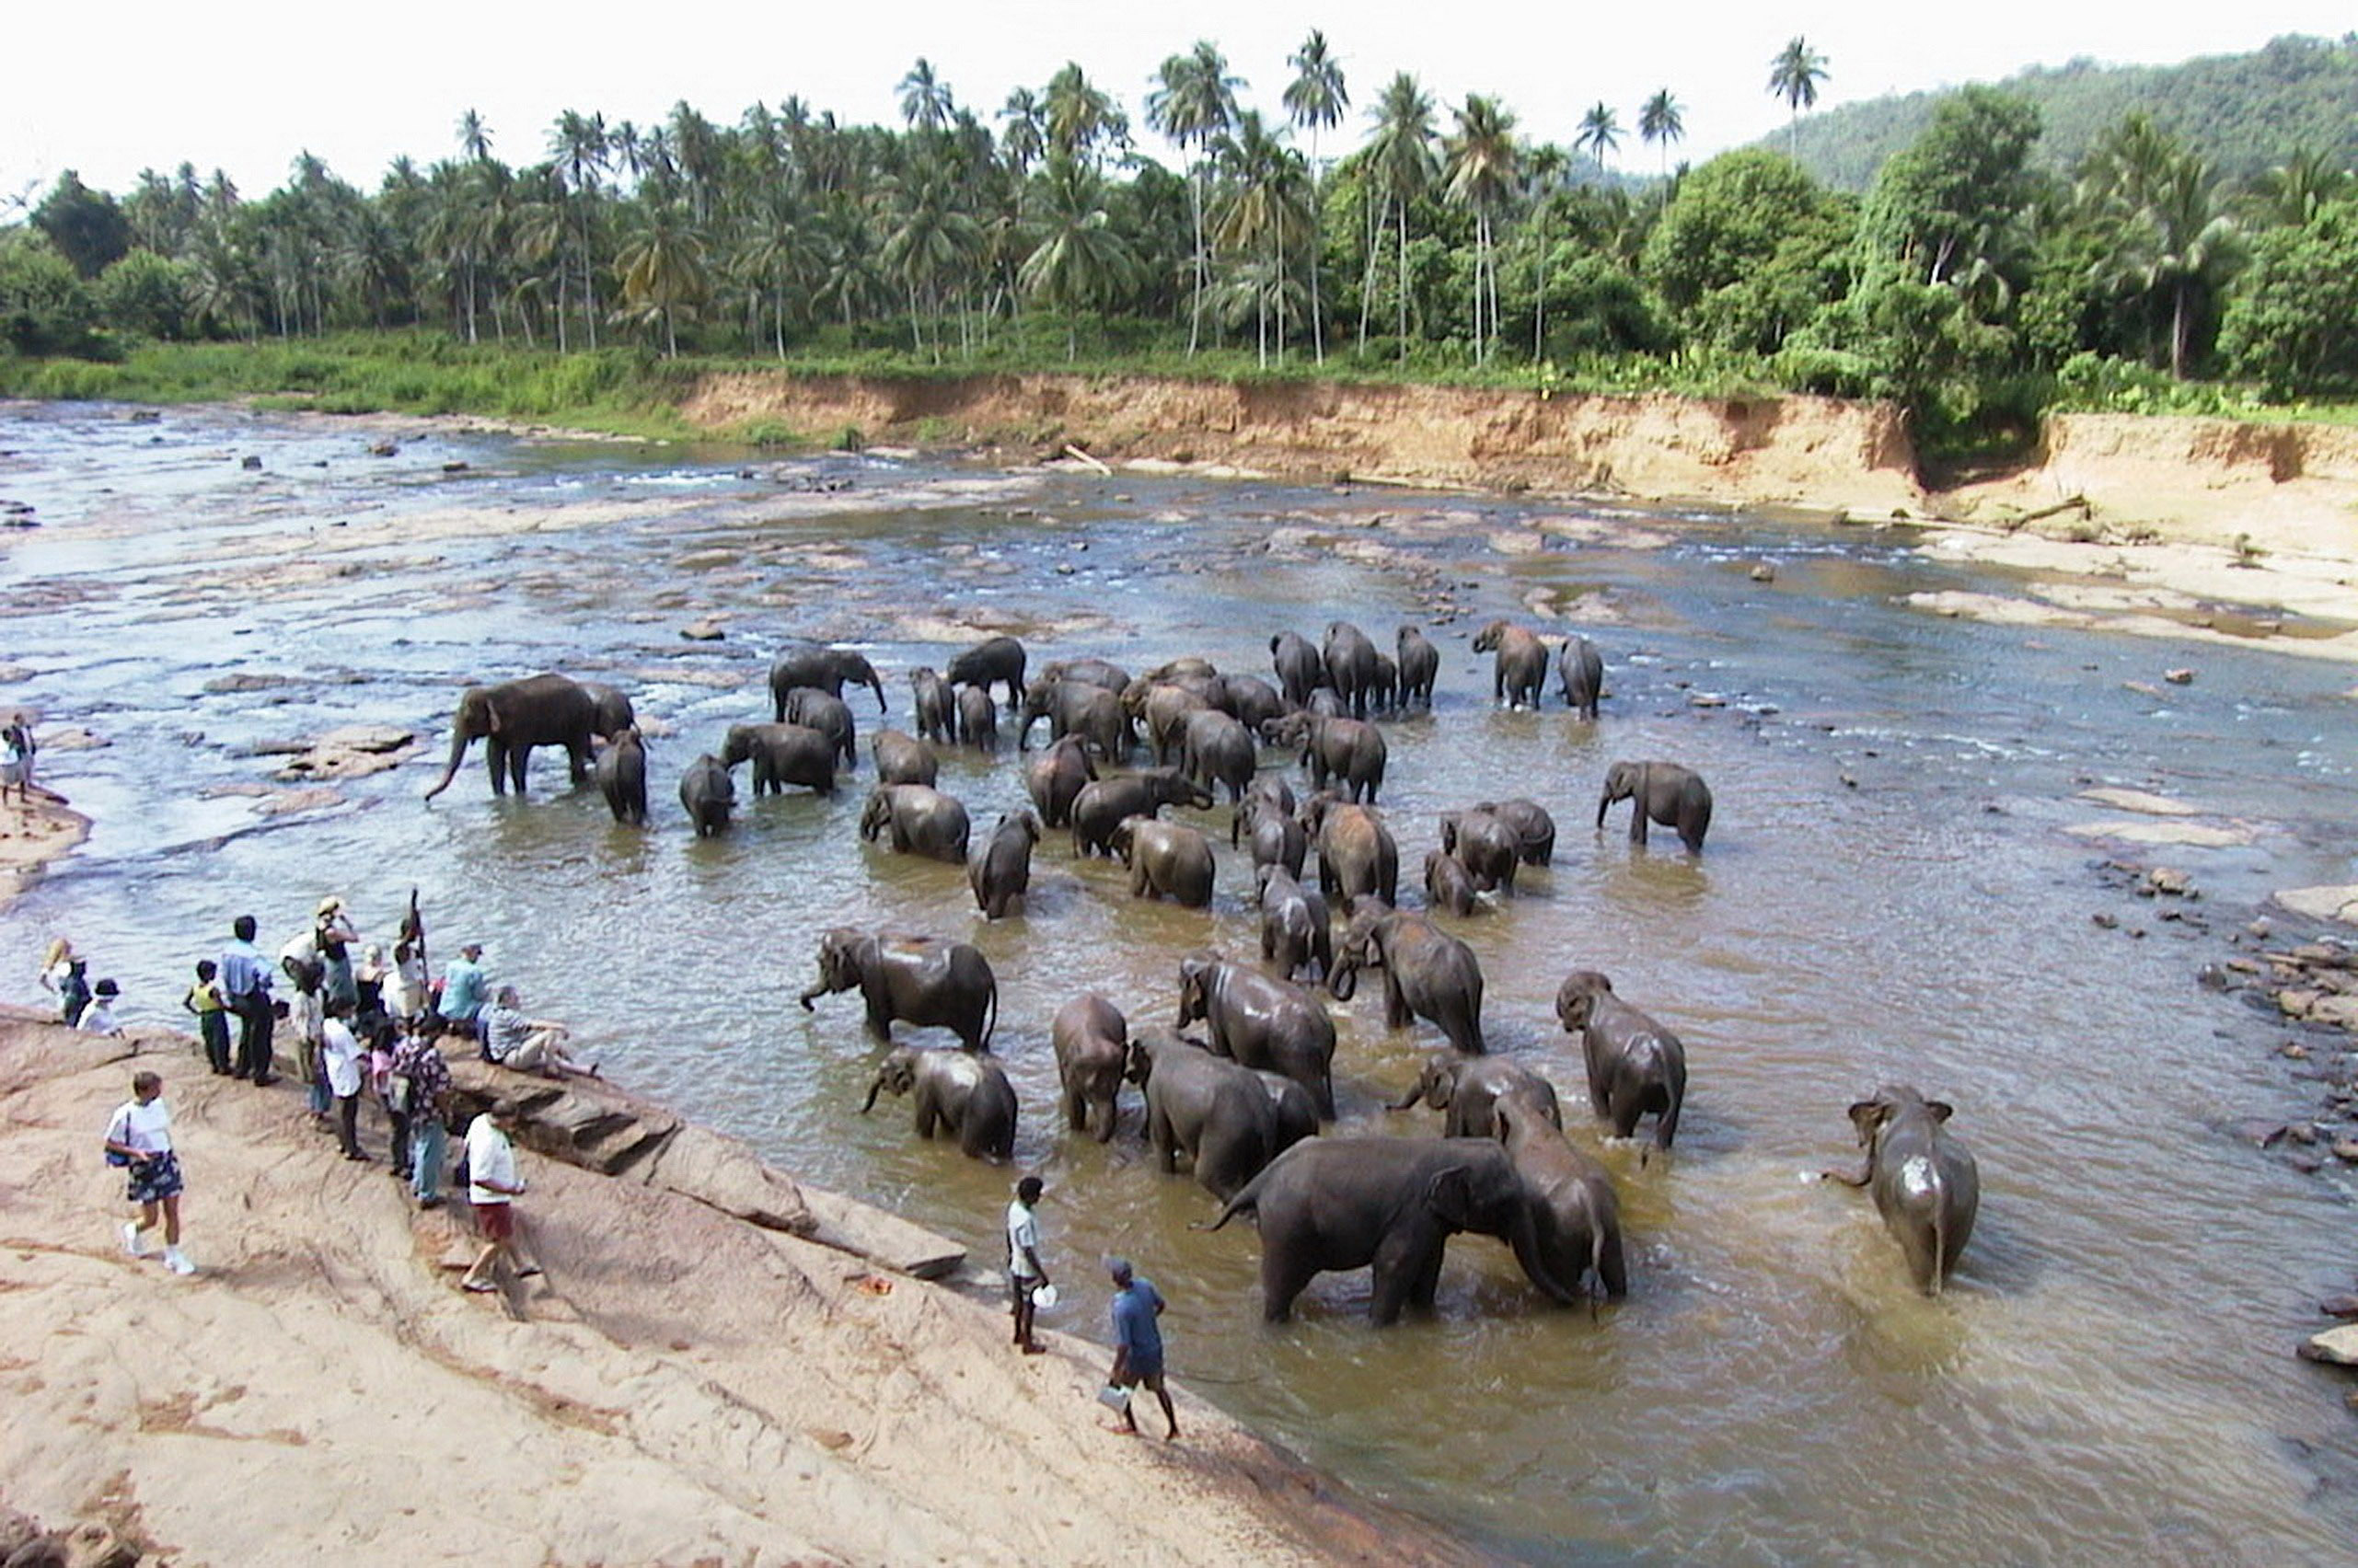 herd-of-elephants-washing-in-the-river-in-sri-lanka